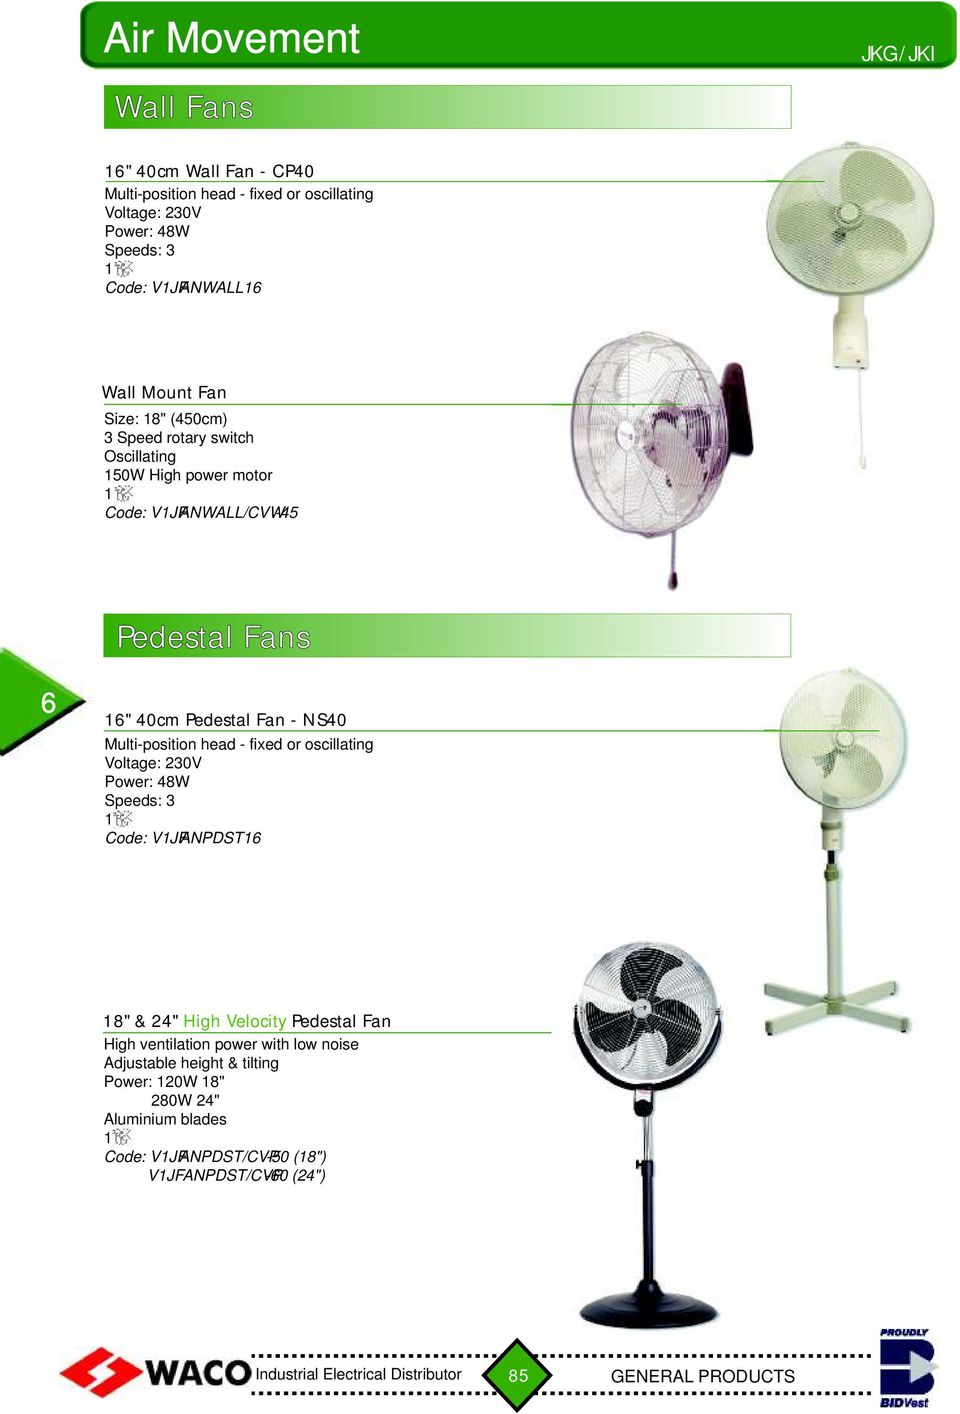 Air Movement Heaters Desk Fans Wall Pedestal Ceiling Fan Wiring Diagram Multi Position Head Fixed Or Oscillating Power 48w Speeds 3 Code